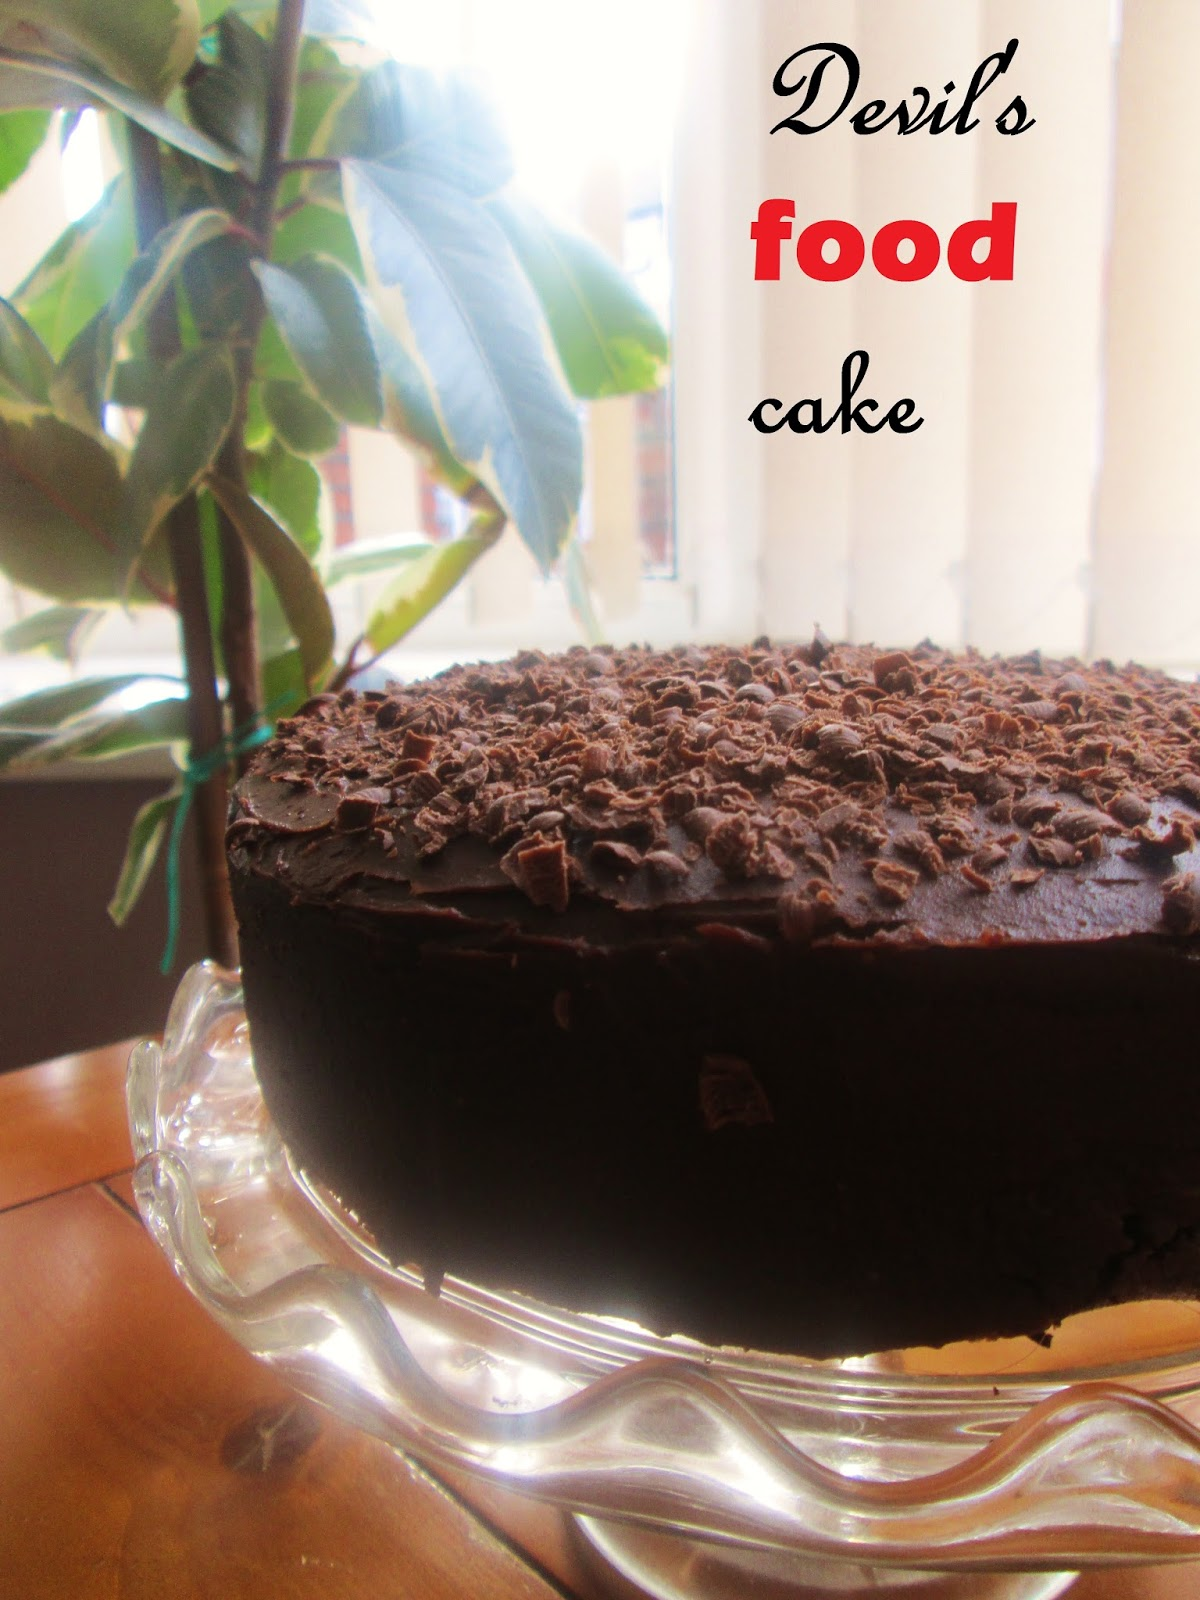 http://themessykitchenuk.blogspot.co.uk/2013/08/devils-food-cake.html